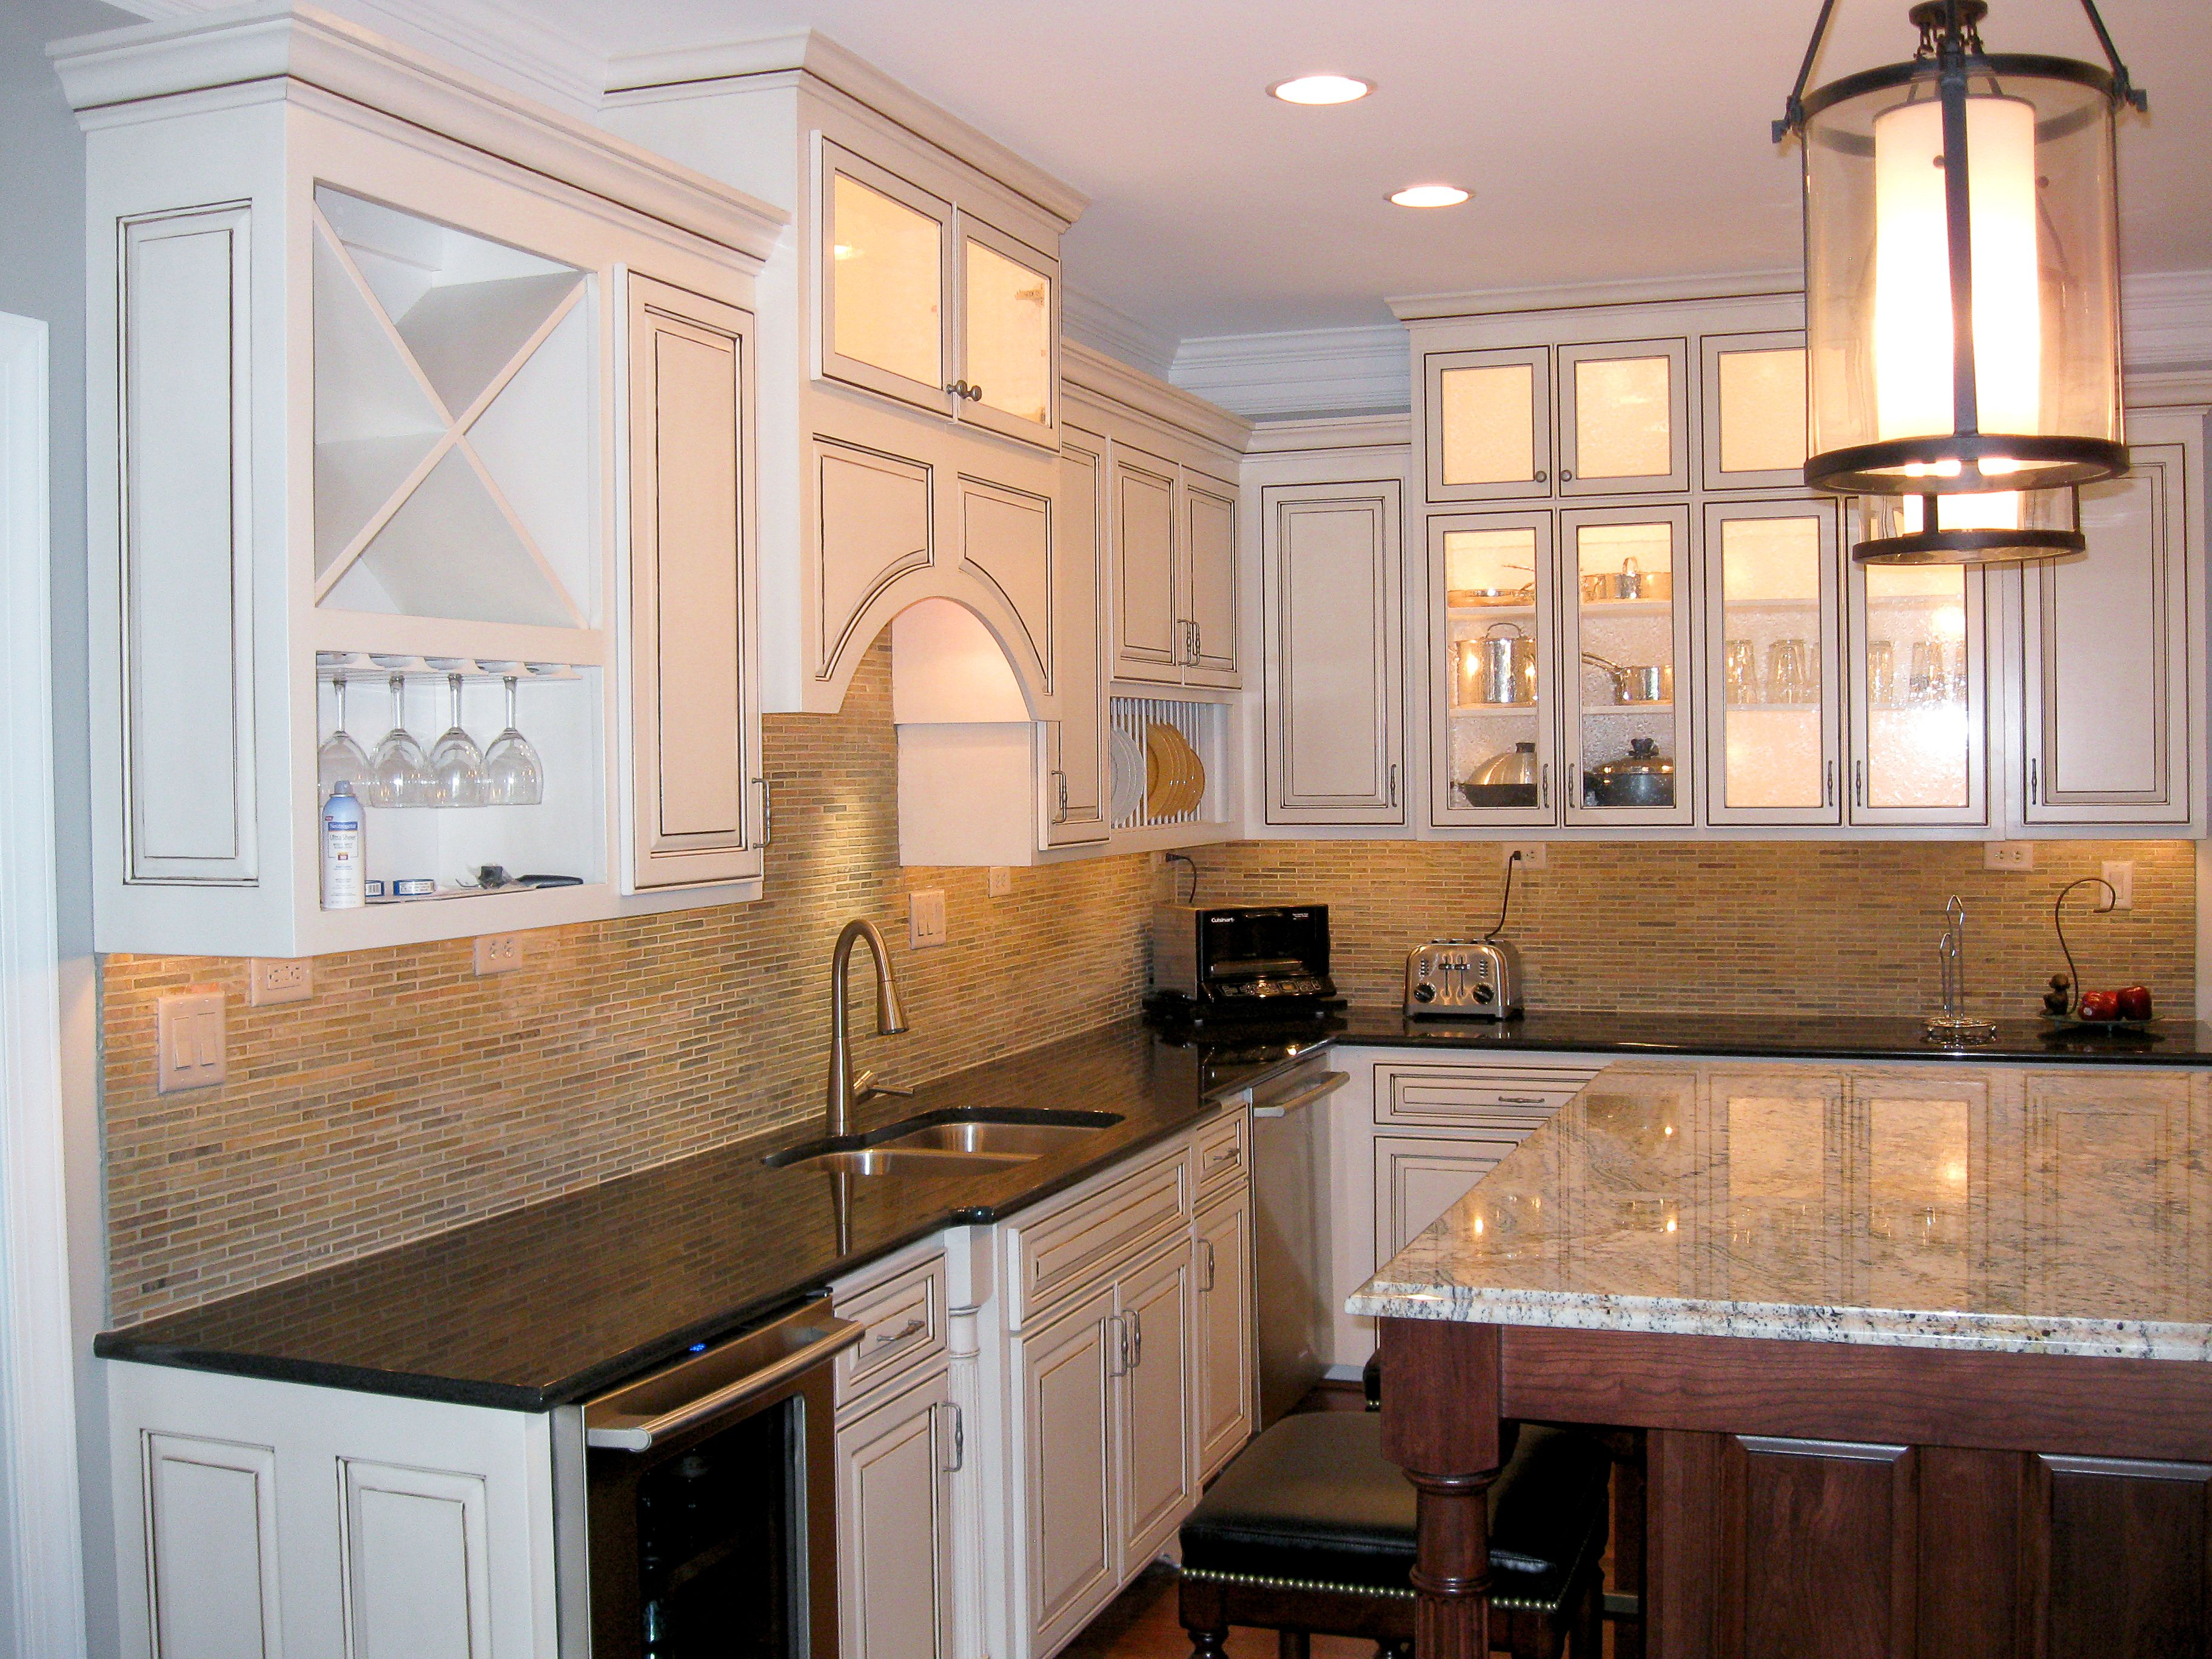 Gorgeous Custom Kitchen Remodel Renovation With Beautiful